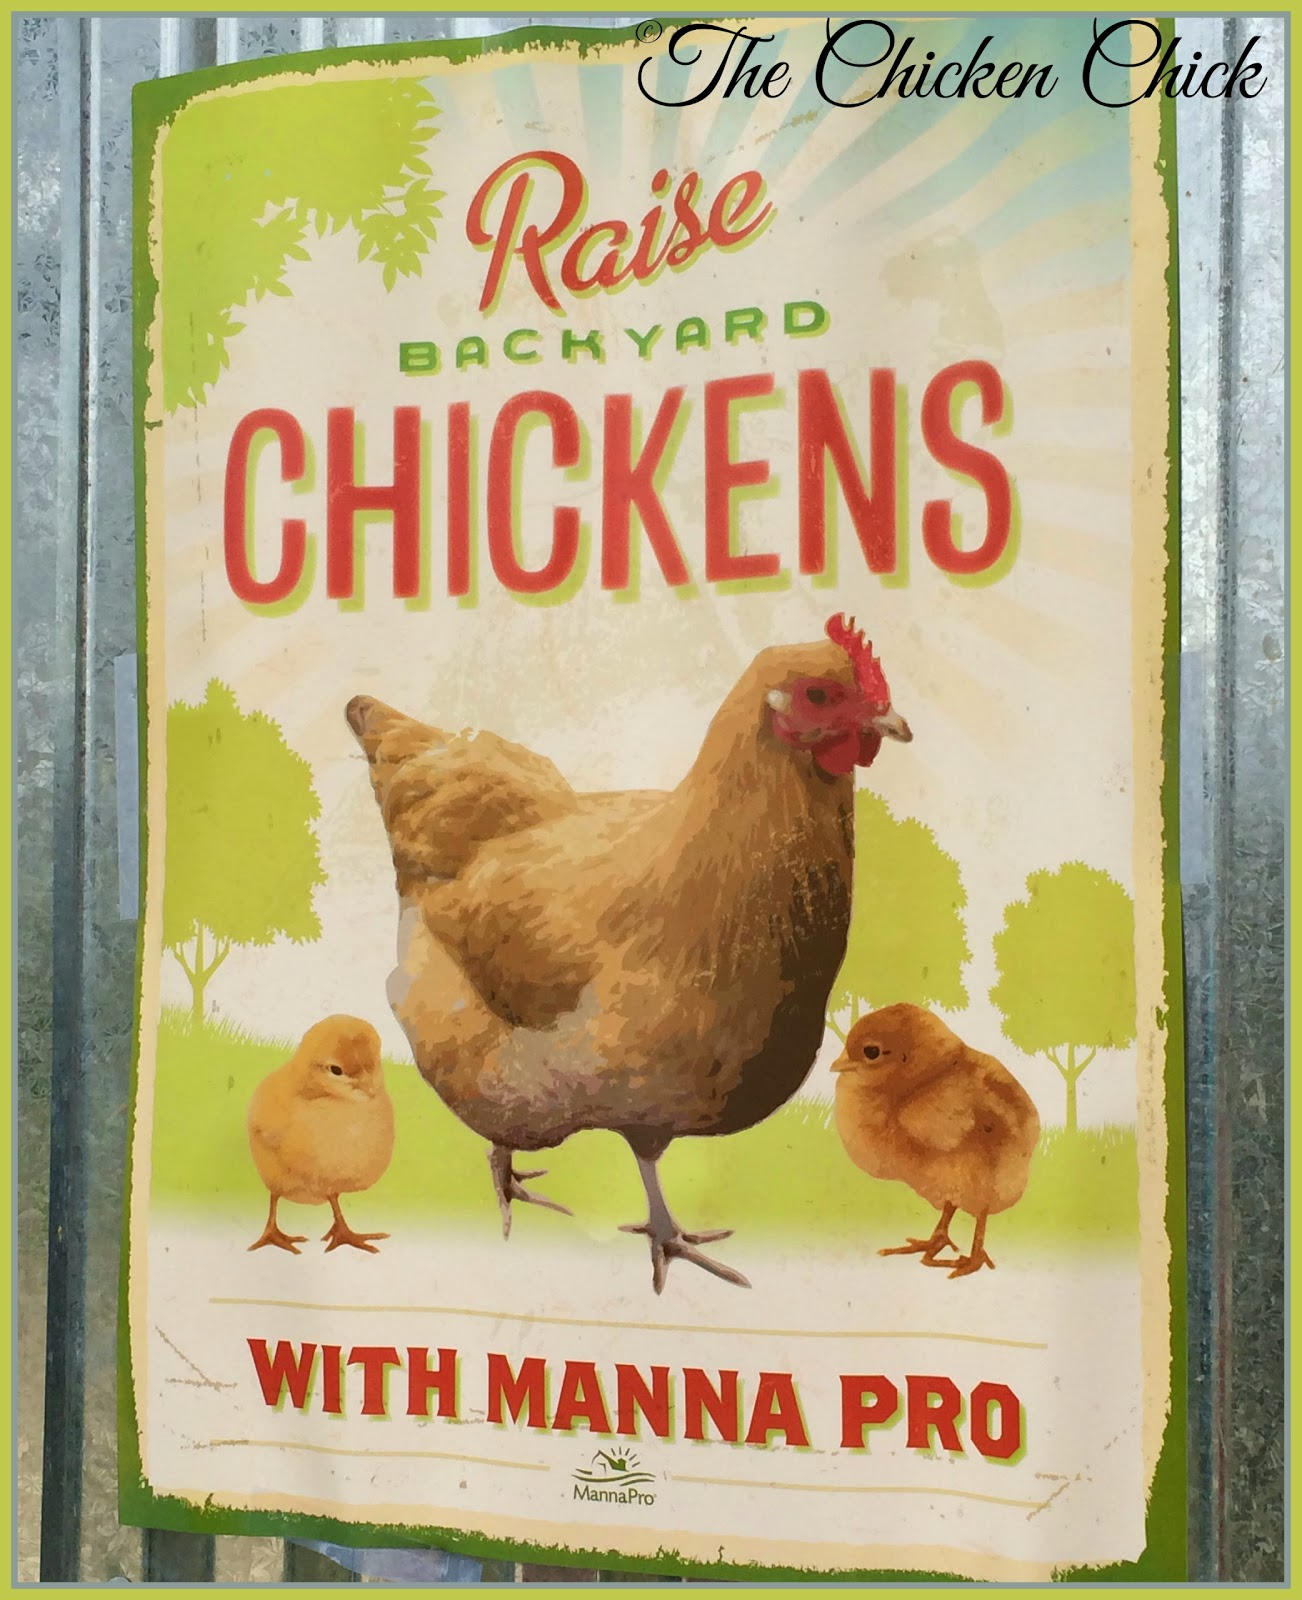 Manna Pro Poultry Raise Backyard Chickens poster giveaway